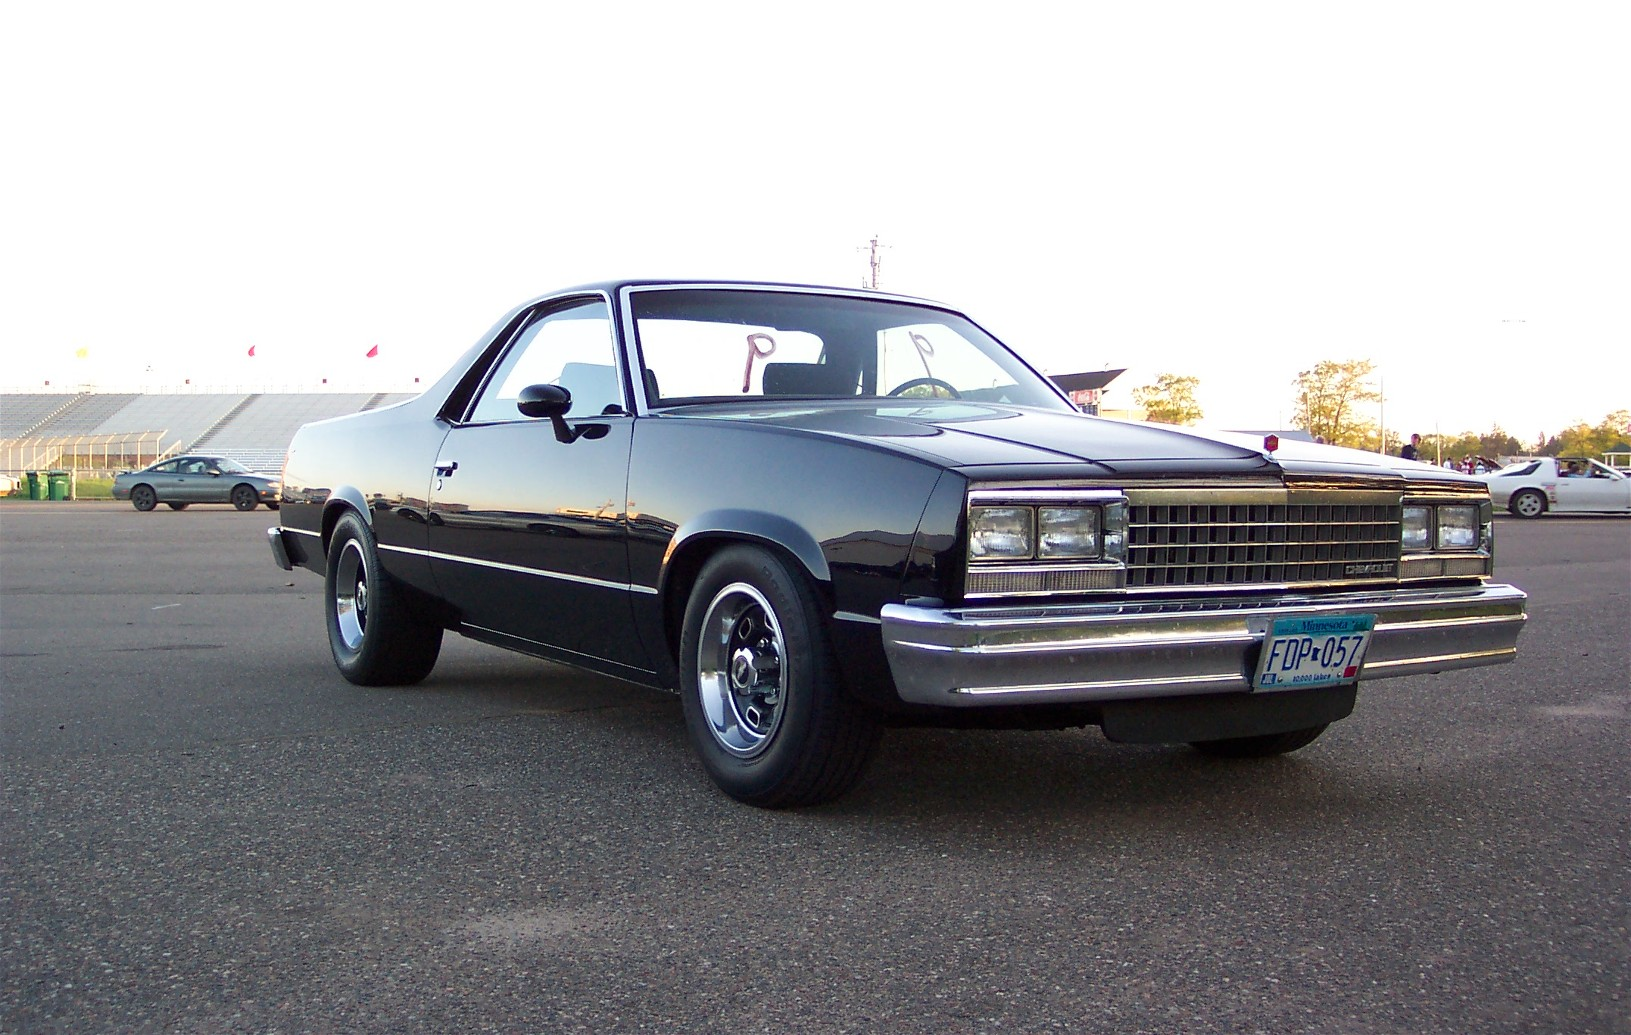 camino : Chevrolet El Camino: Photos, Reviews, News, Specs, Buy car